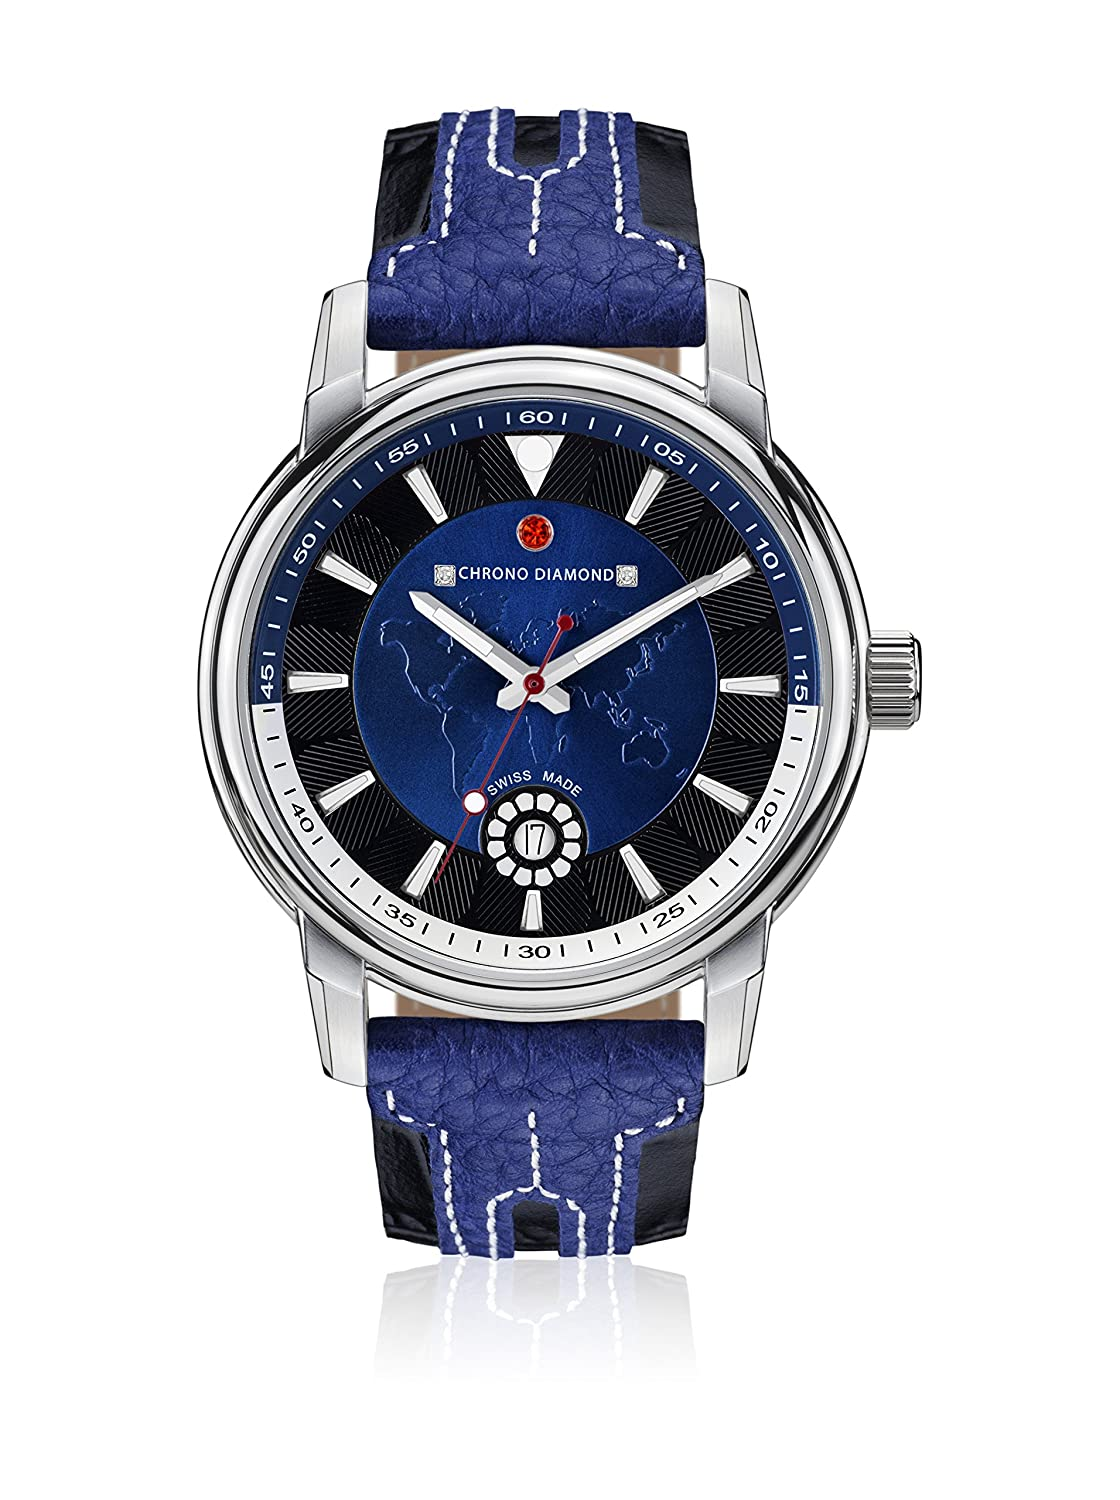 Uhr Quarz Chrono Diamond Display Analog Armband Leder Blau und Zifferblatt Blau 82068 _ blau-43 mm